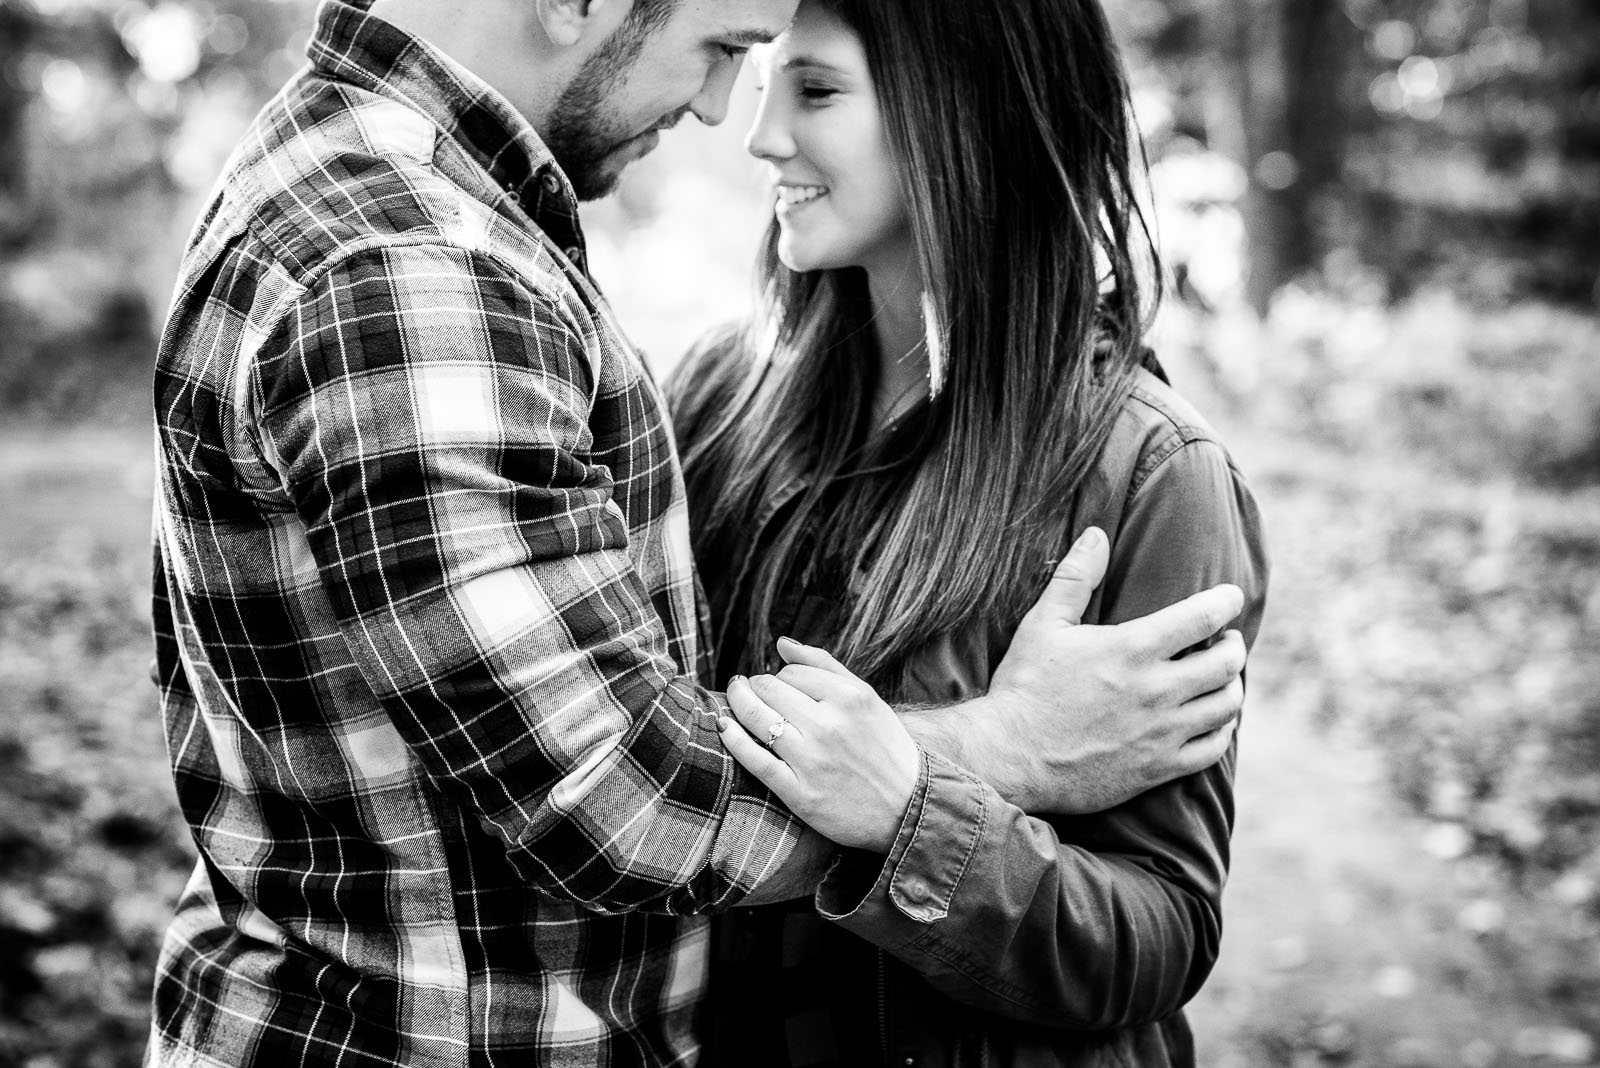 Eric_and_Christy_Photography_Blog_Stephanie_Nick_Engagement-27